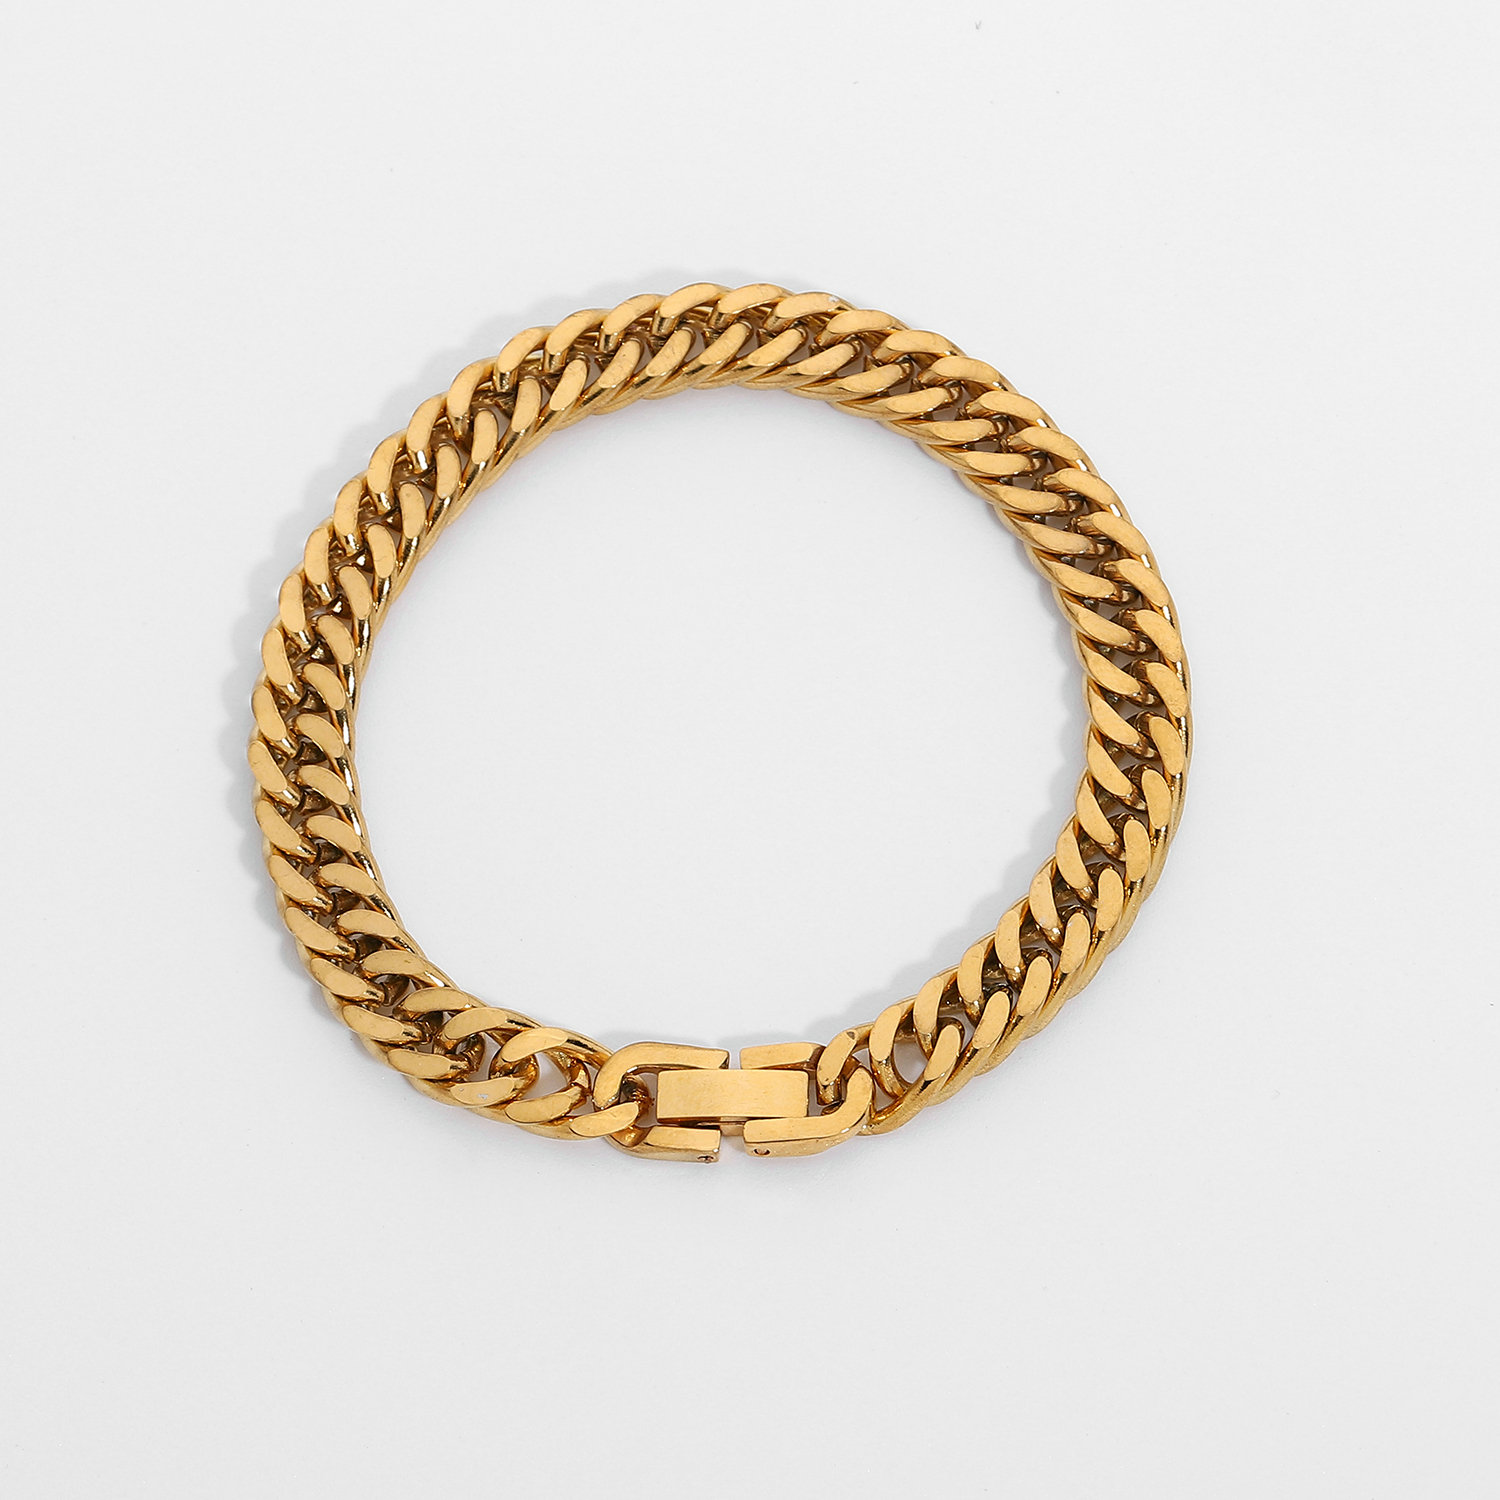 7.3mm Chunky gold Cuban Chain bracelet for women 18K Gold Plated Stainless Steel Miami Link Chain Bracelet